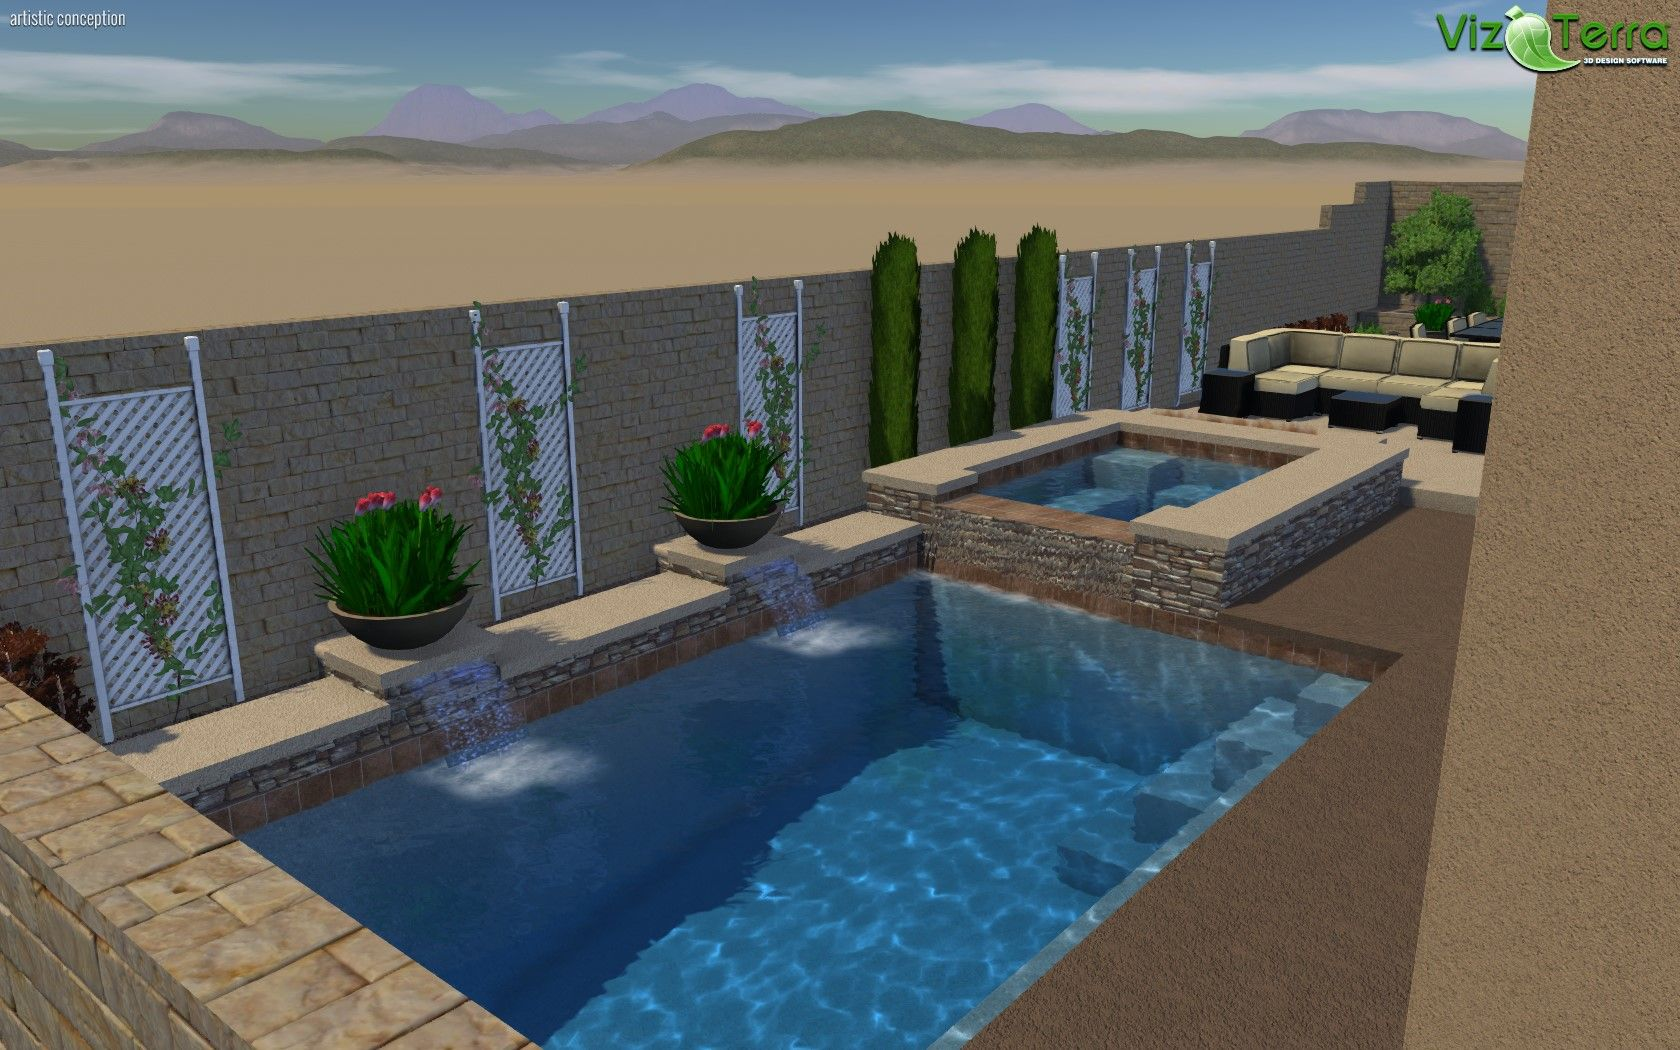 3D Landscape and Pool design. Nice back yard with Pool